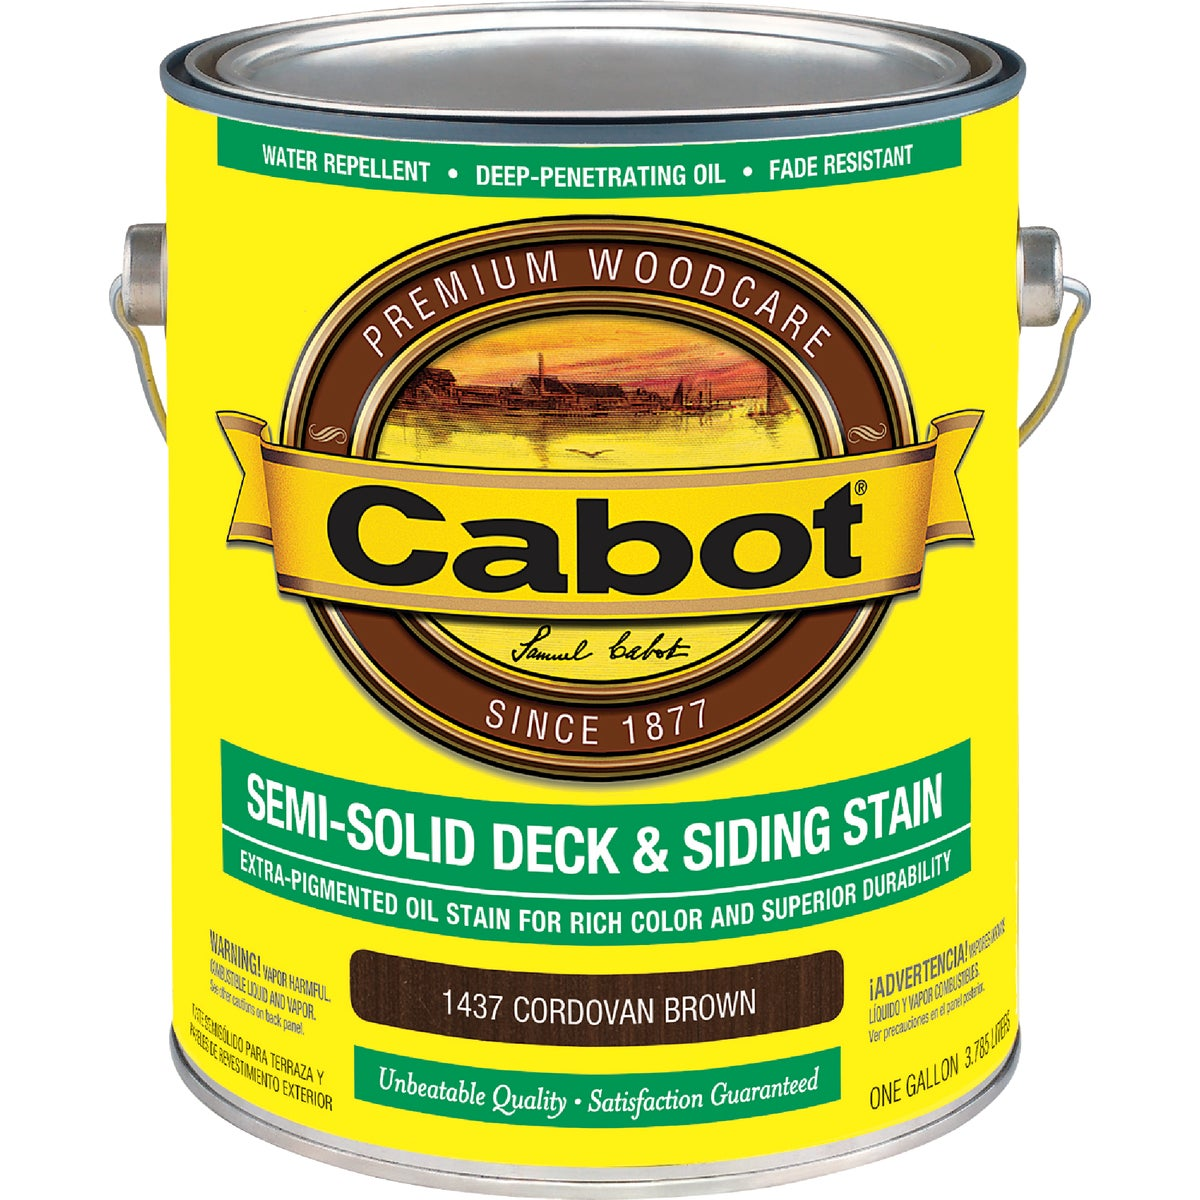 COR BRN S-SOL DECK STAIN - 140.0001437.007 by Valspar Corp